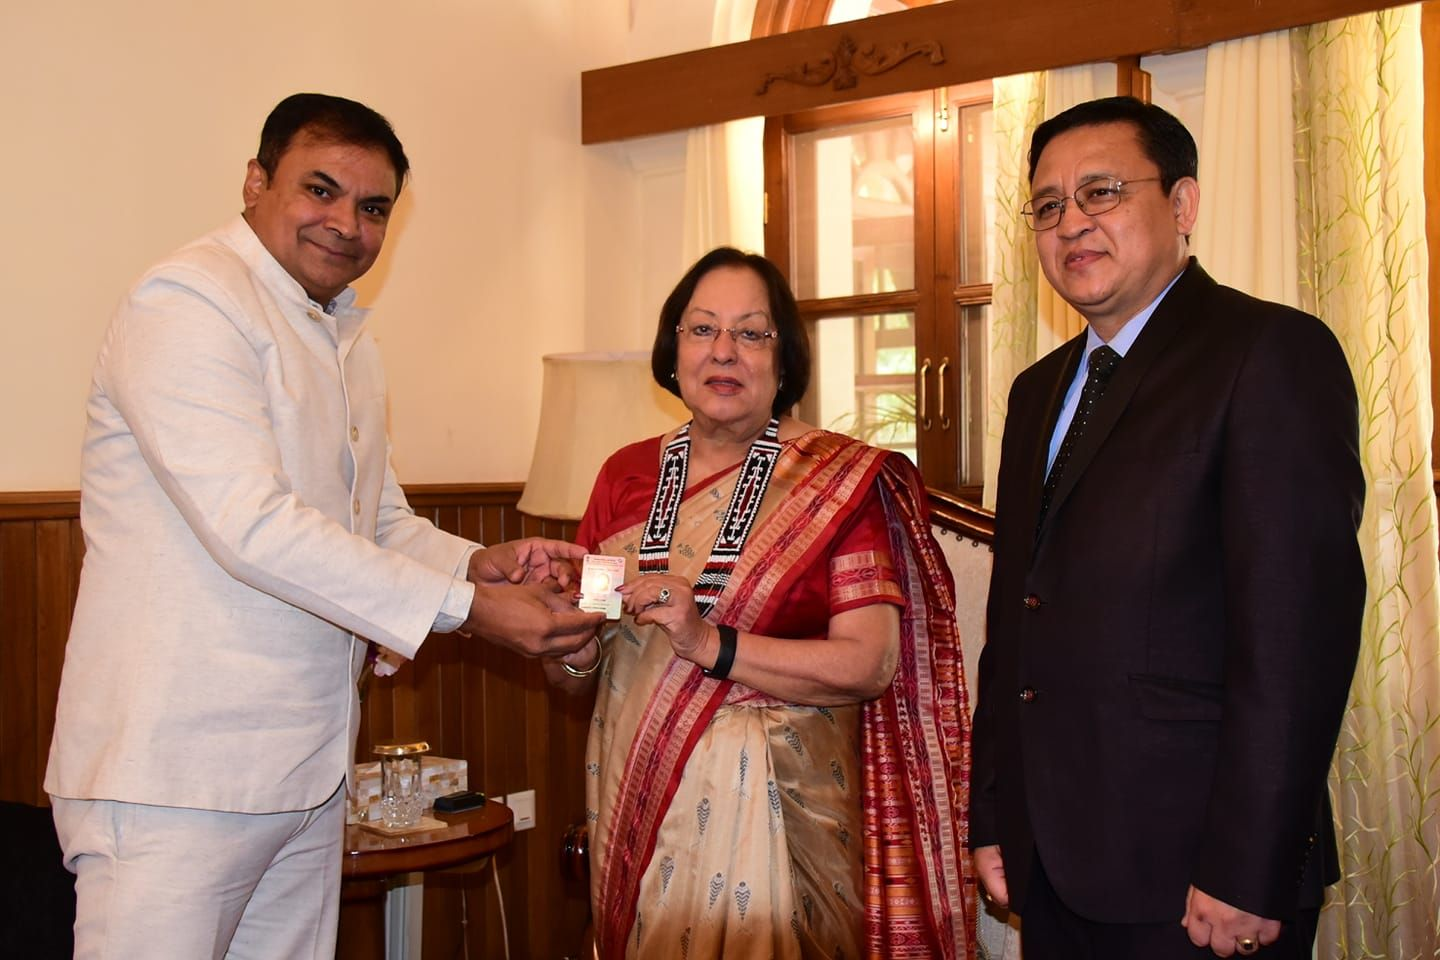 Governor of Manipur moves her vote to Manipur